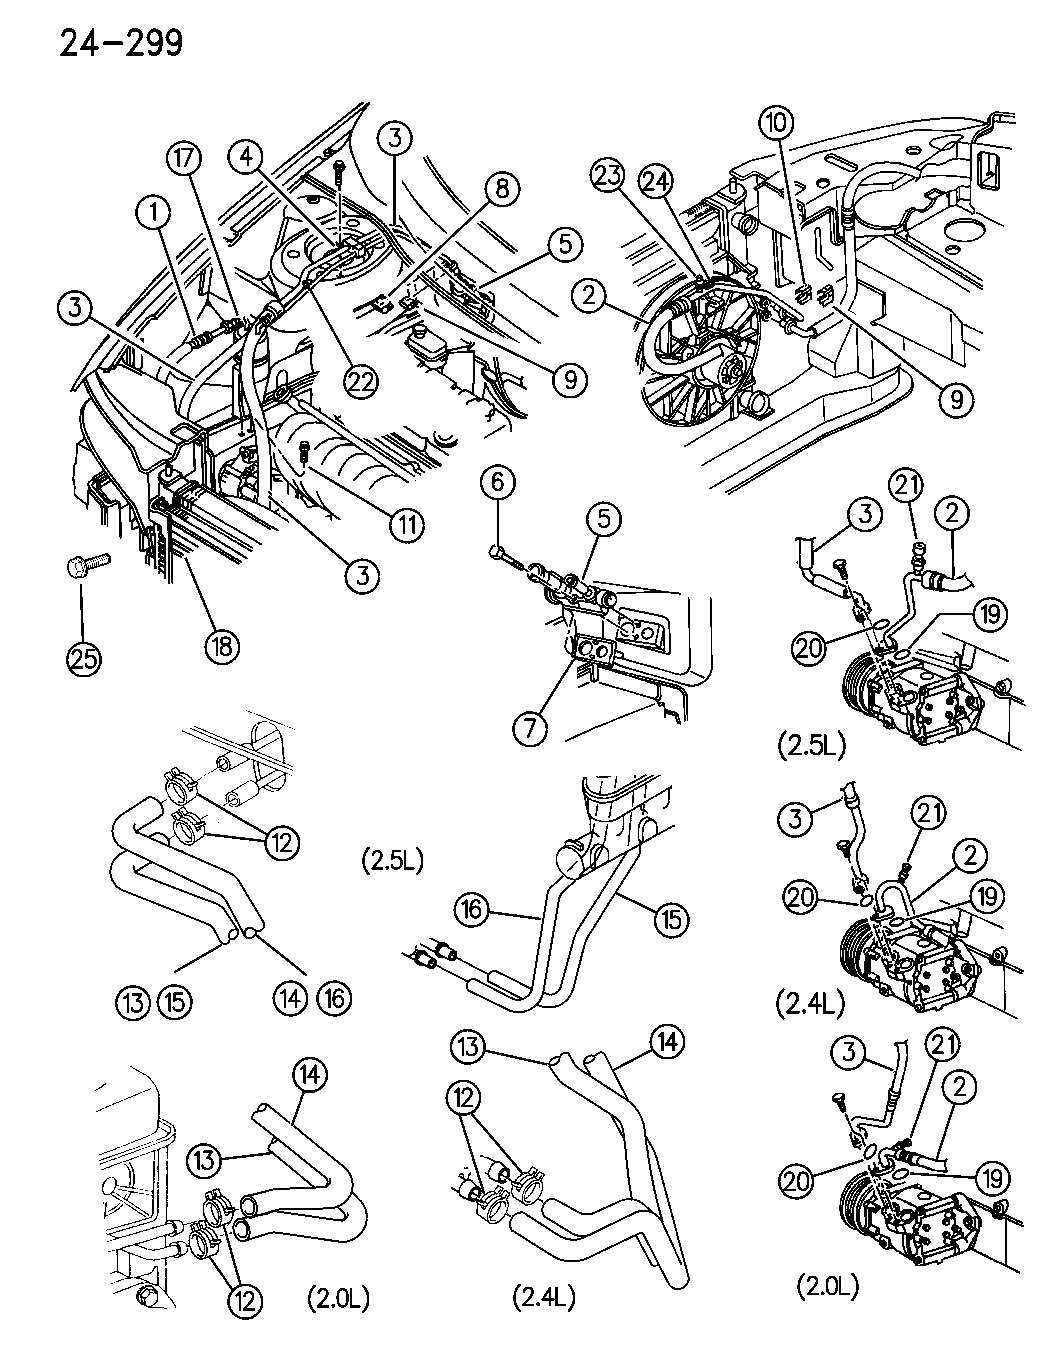 Service manual [1996 Chrysler Sebring Evaporator